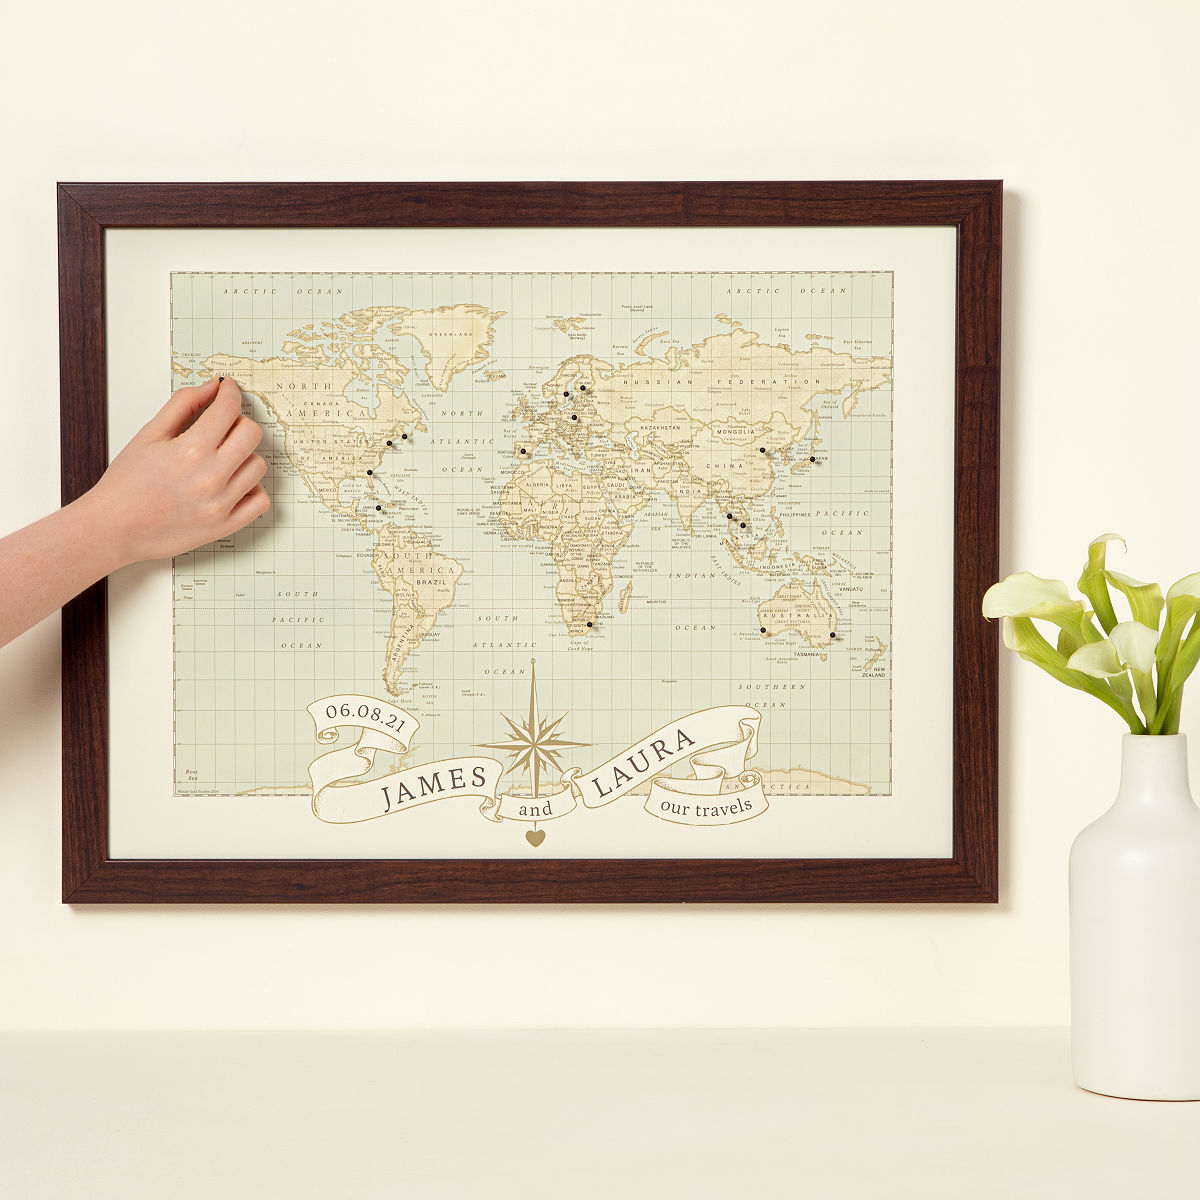 Wedding gifts unique wedding gift ideas uncommongoods customizable personalized anniversary pushpin world map negle Gallery